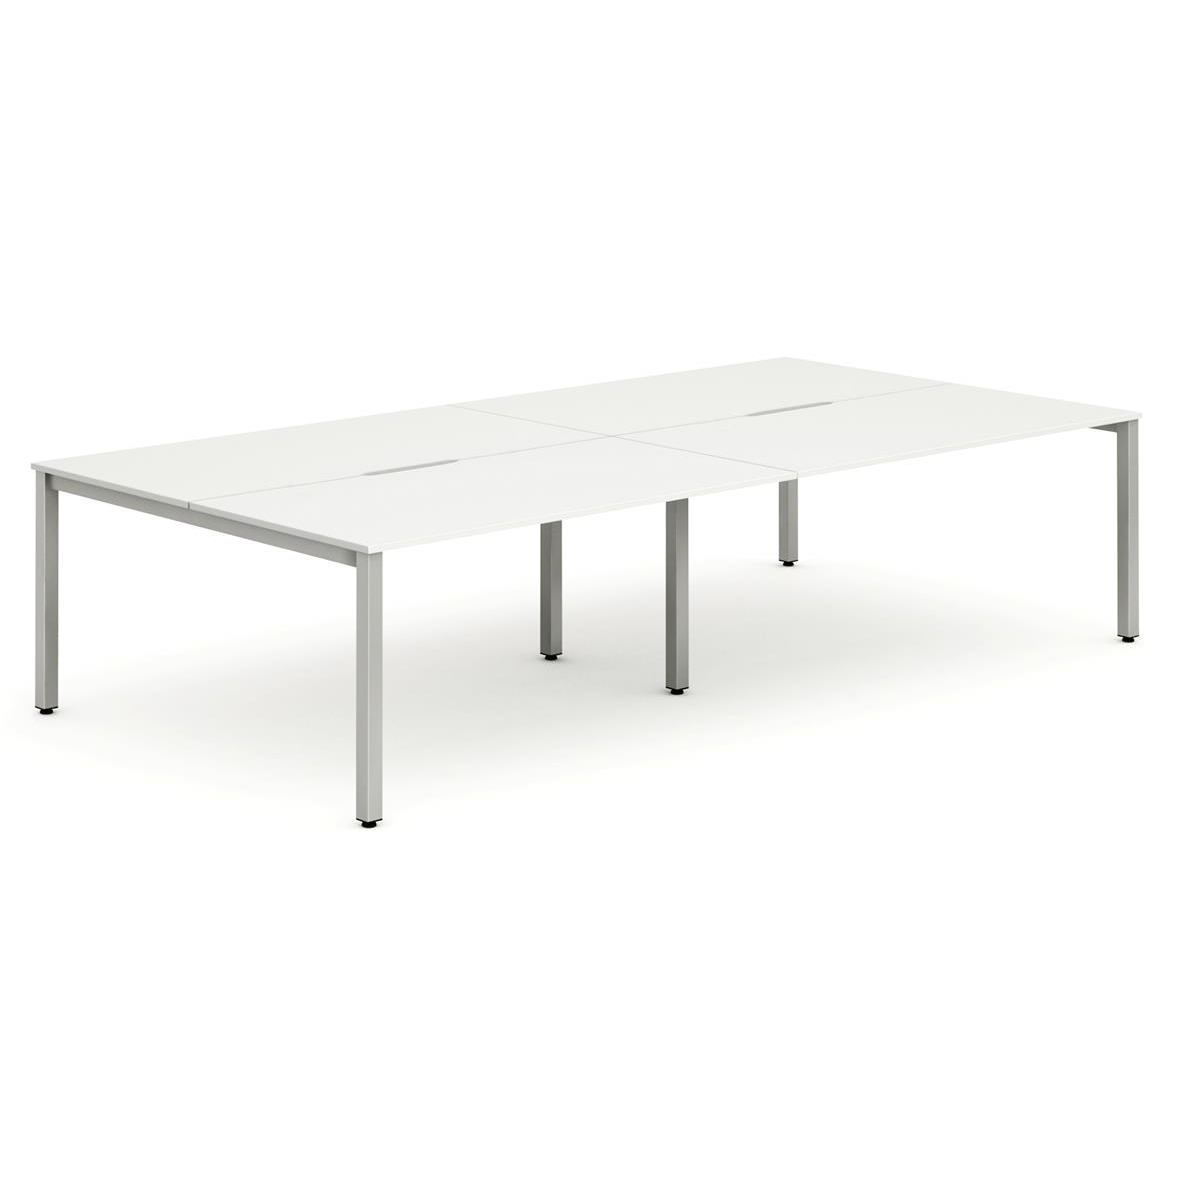 Trexus Bench Desk 4 Person Lockable Sliding Top 1400mm White with Silver Frame